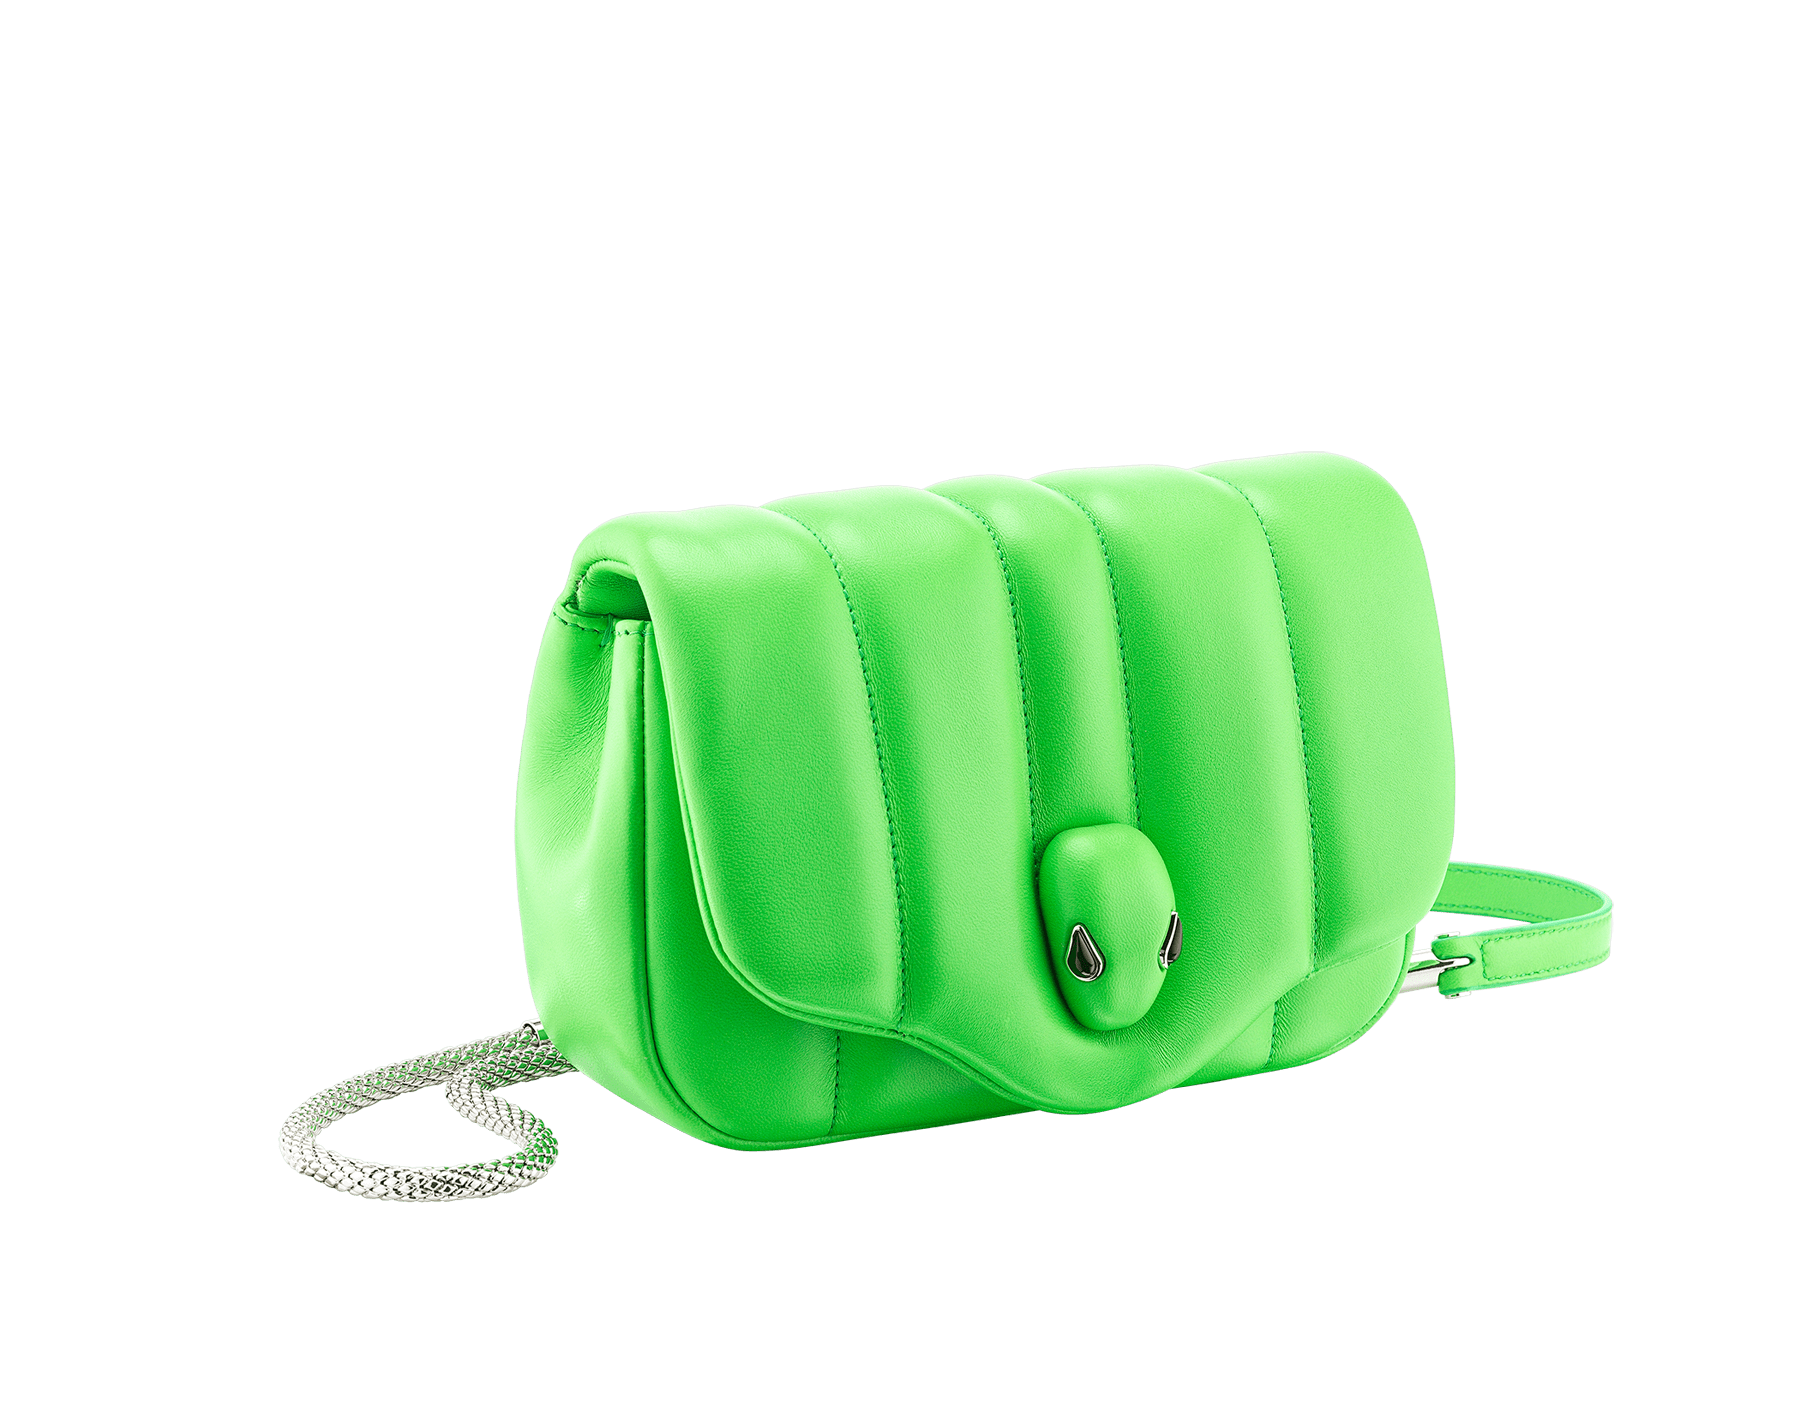 """Ambush x Bvlgari"" belt bag in bright green nappa leather. New Serpenti head closure in palladium plated brass dressed with bright green nappa leather, finished with seductive black onyx eyes. Limited edition. 290351 image 2"